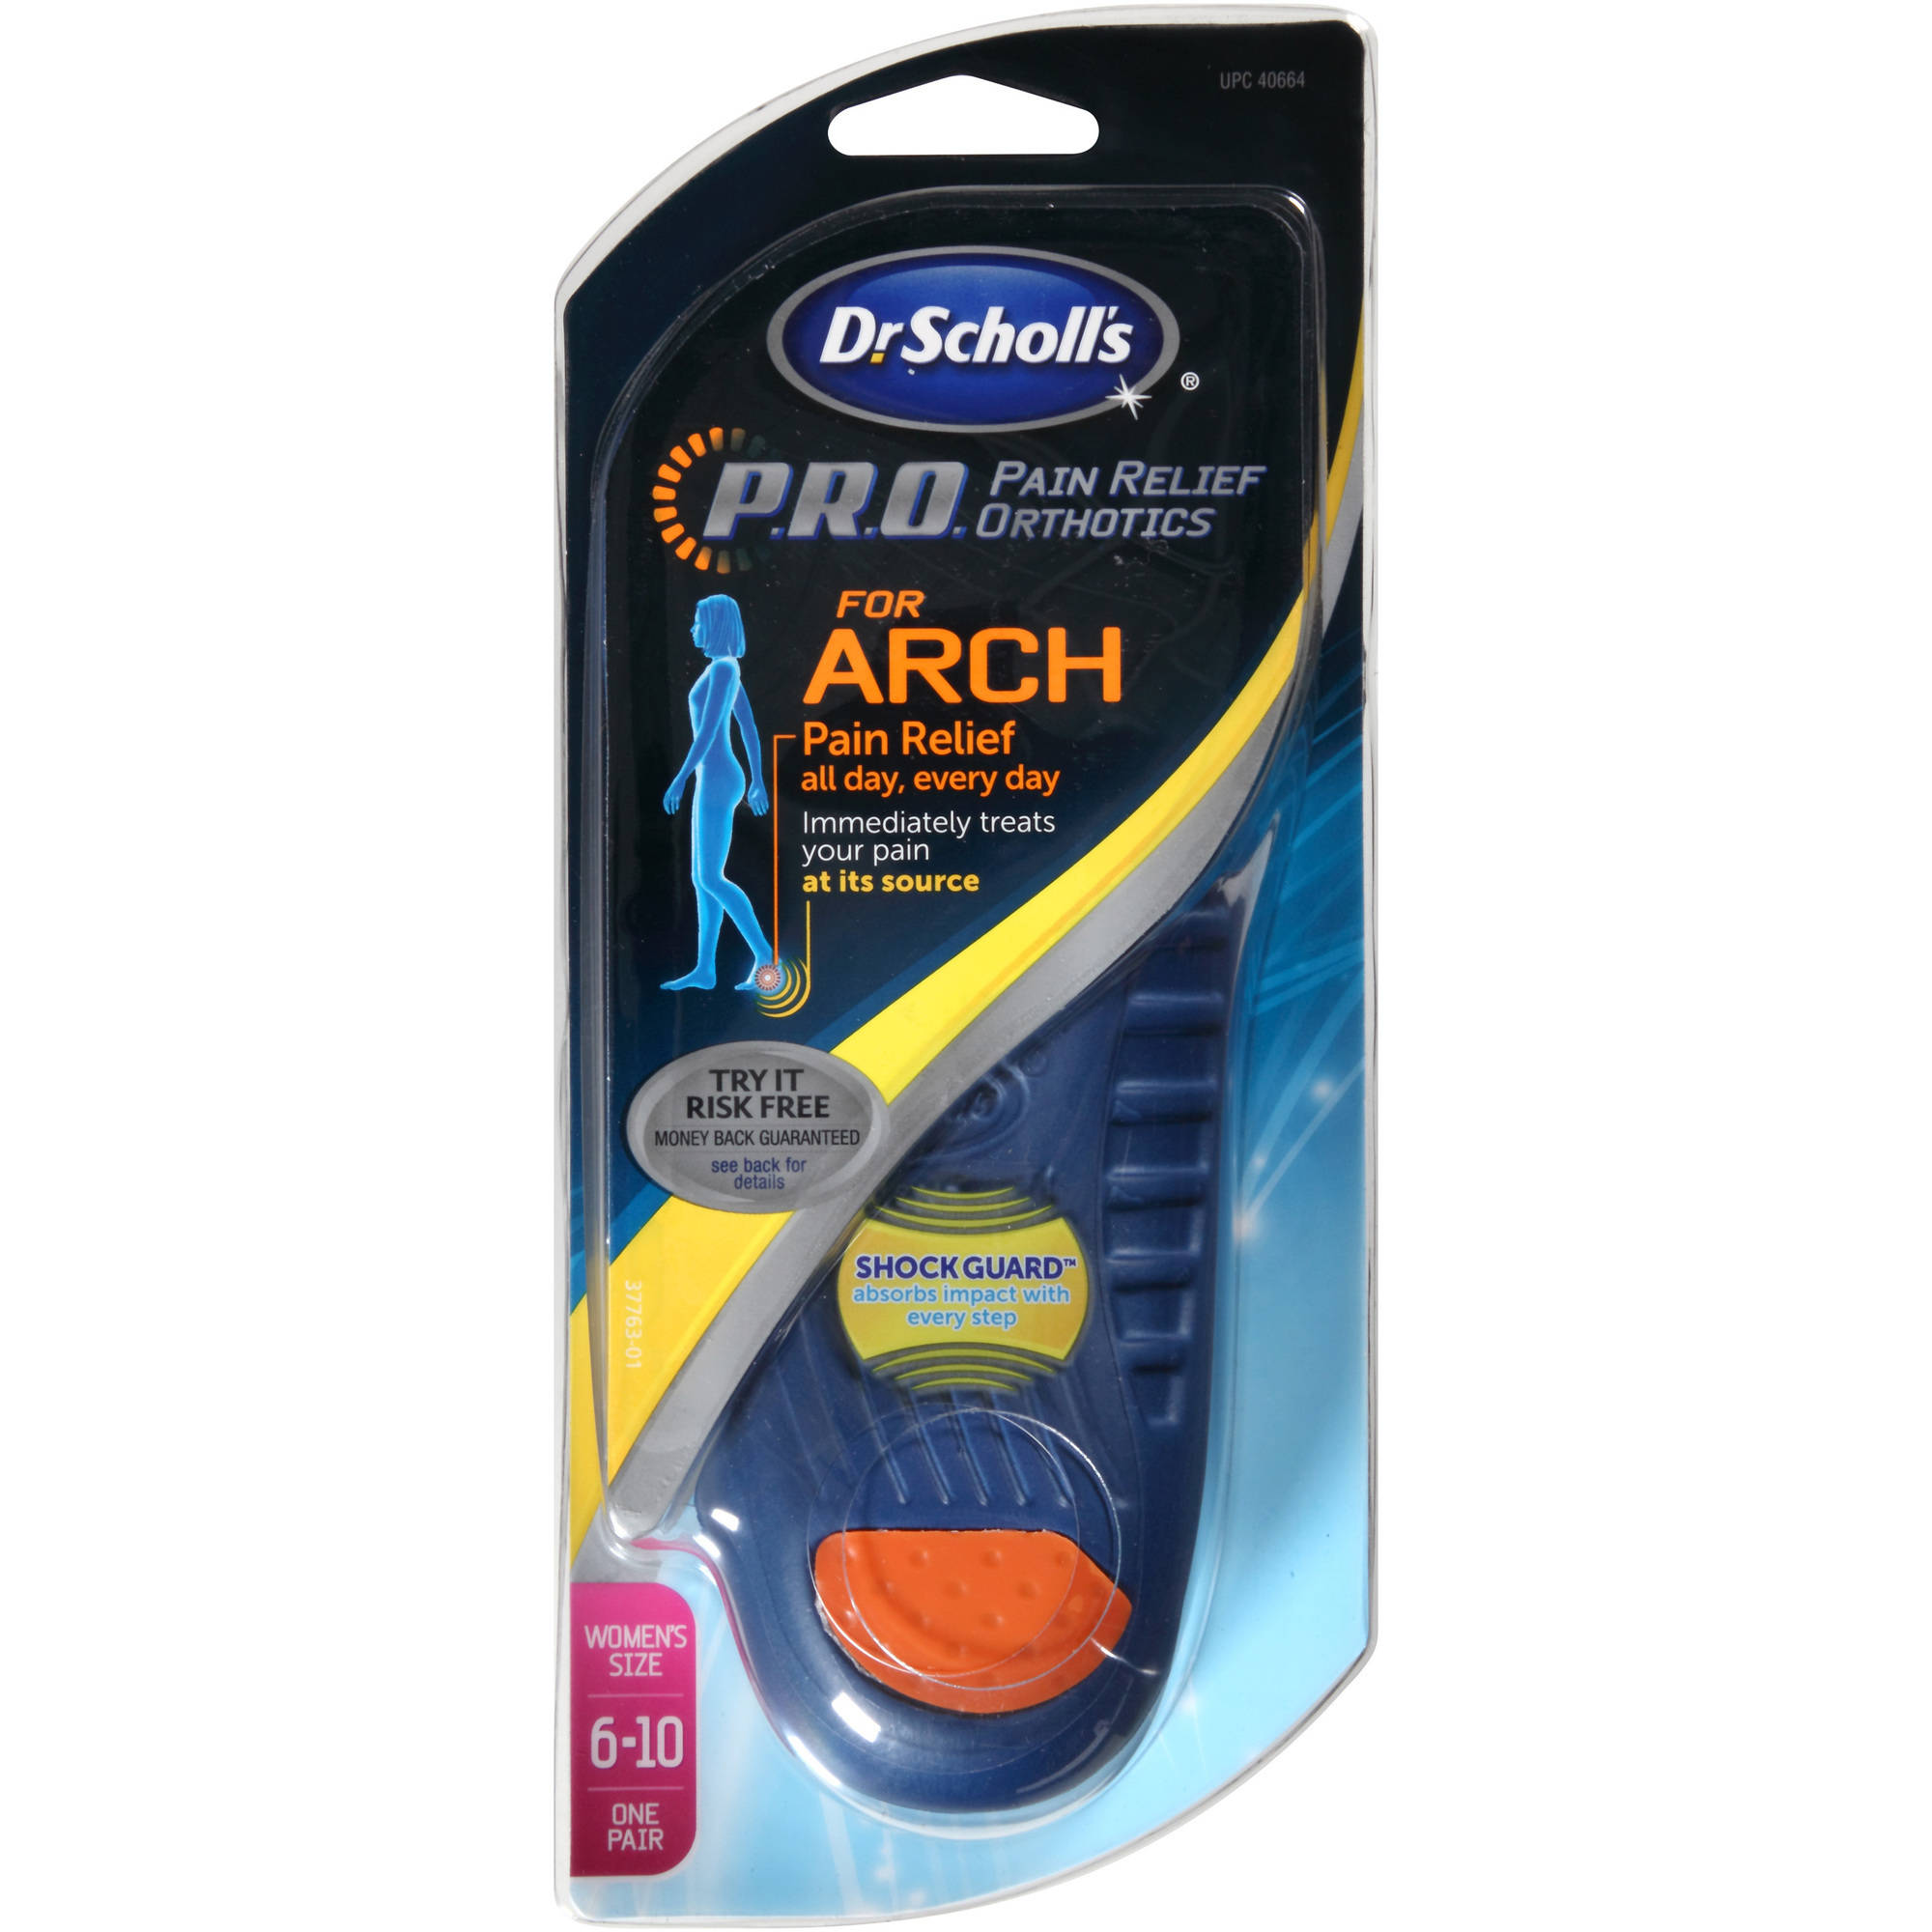 Dr. Scholl's P.R.O. Pain Relief Orthotics for Arch, Women's Size 6-10, 1 pair